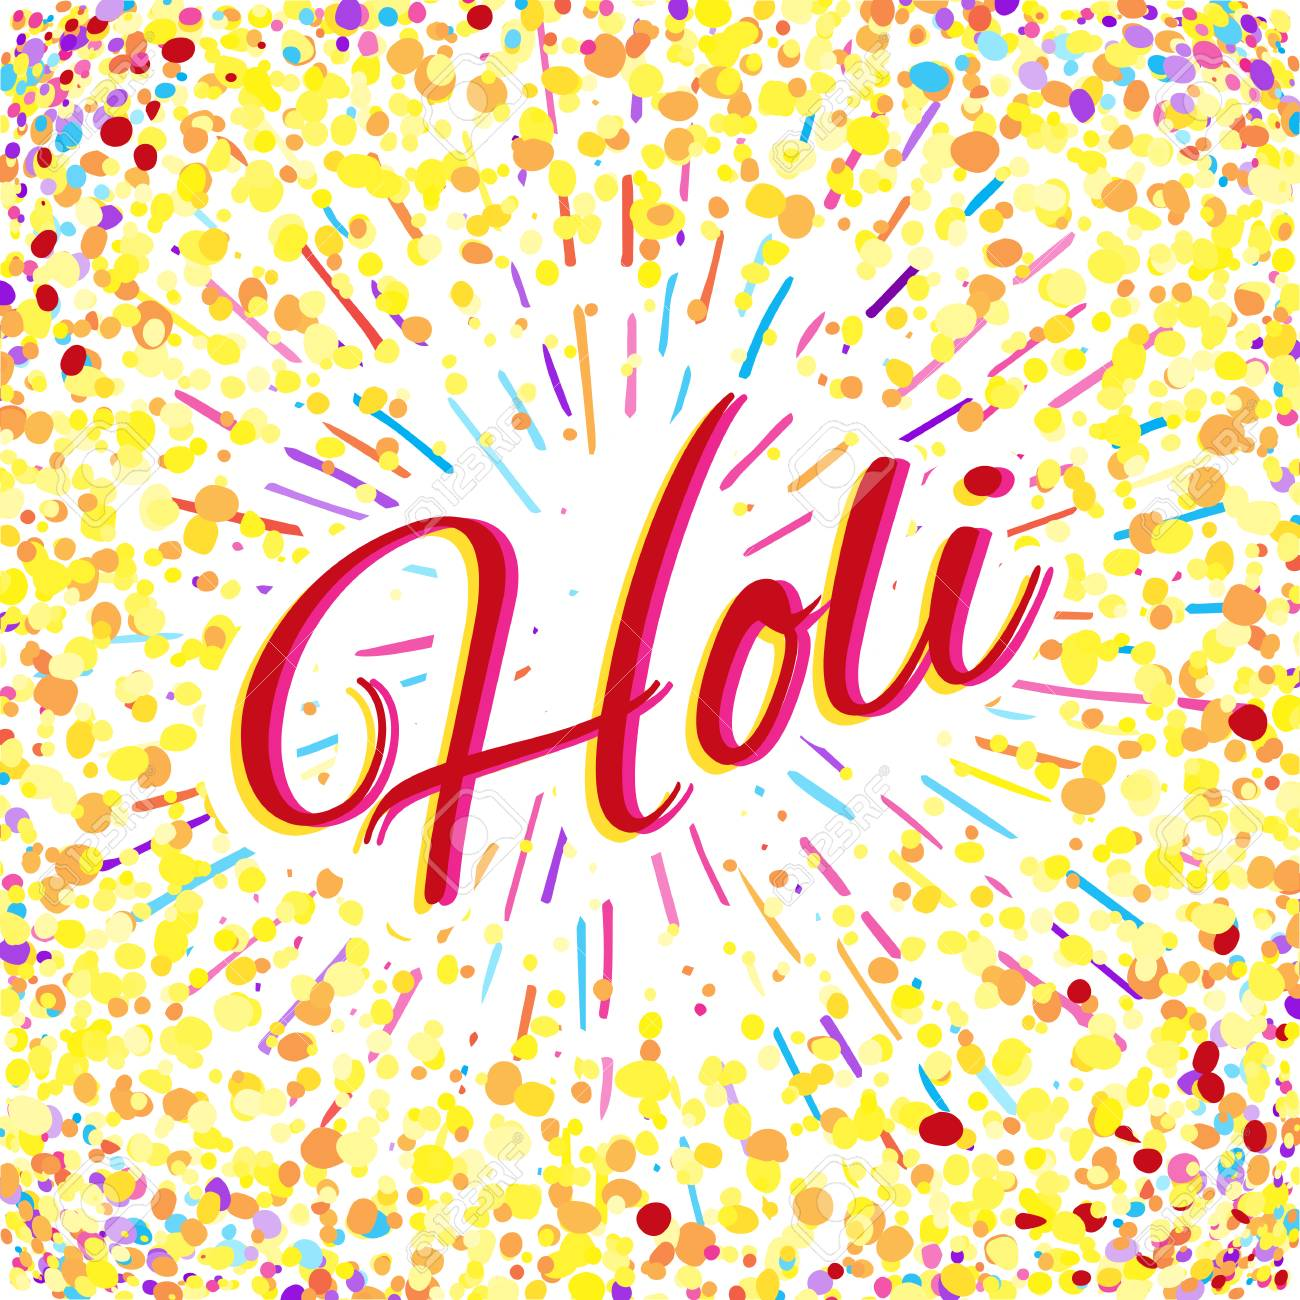 Greeting card for happy holi spring festival with sample text greeting card for happy holi spring festival with sample text llustration of colorful gulaal or m4hsunfo Images